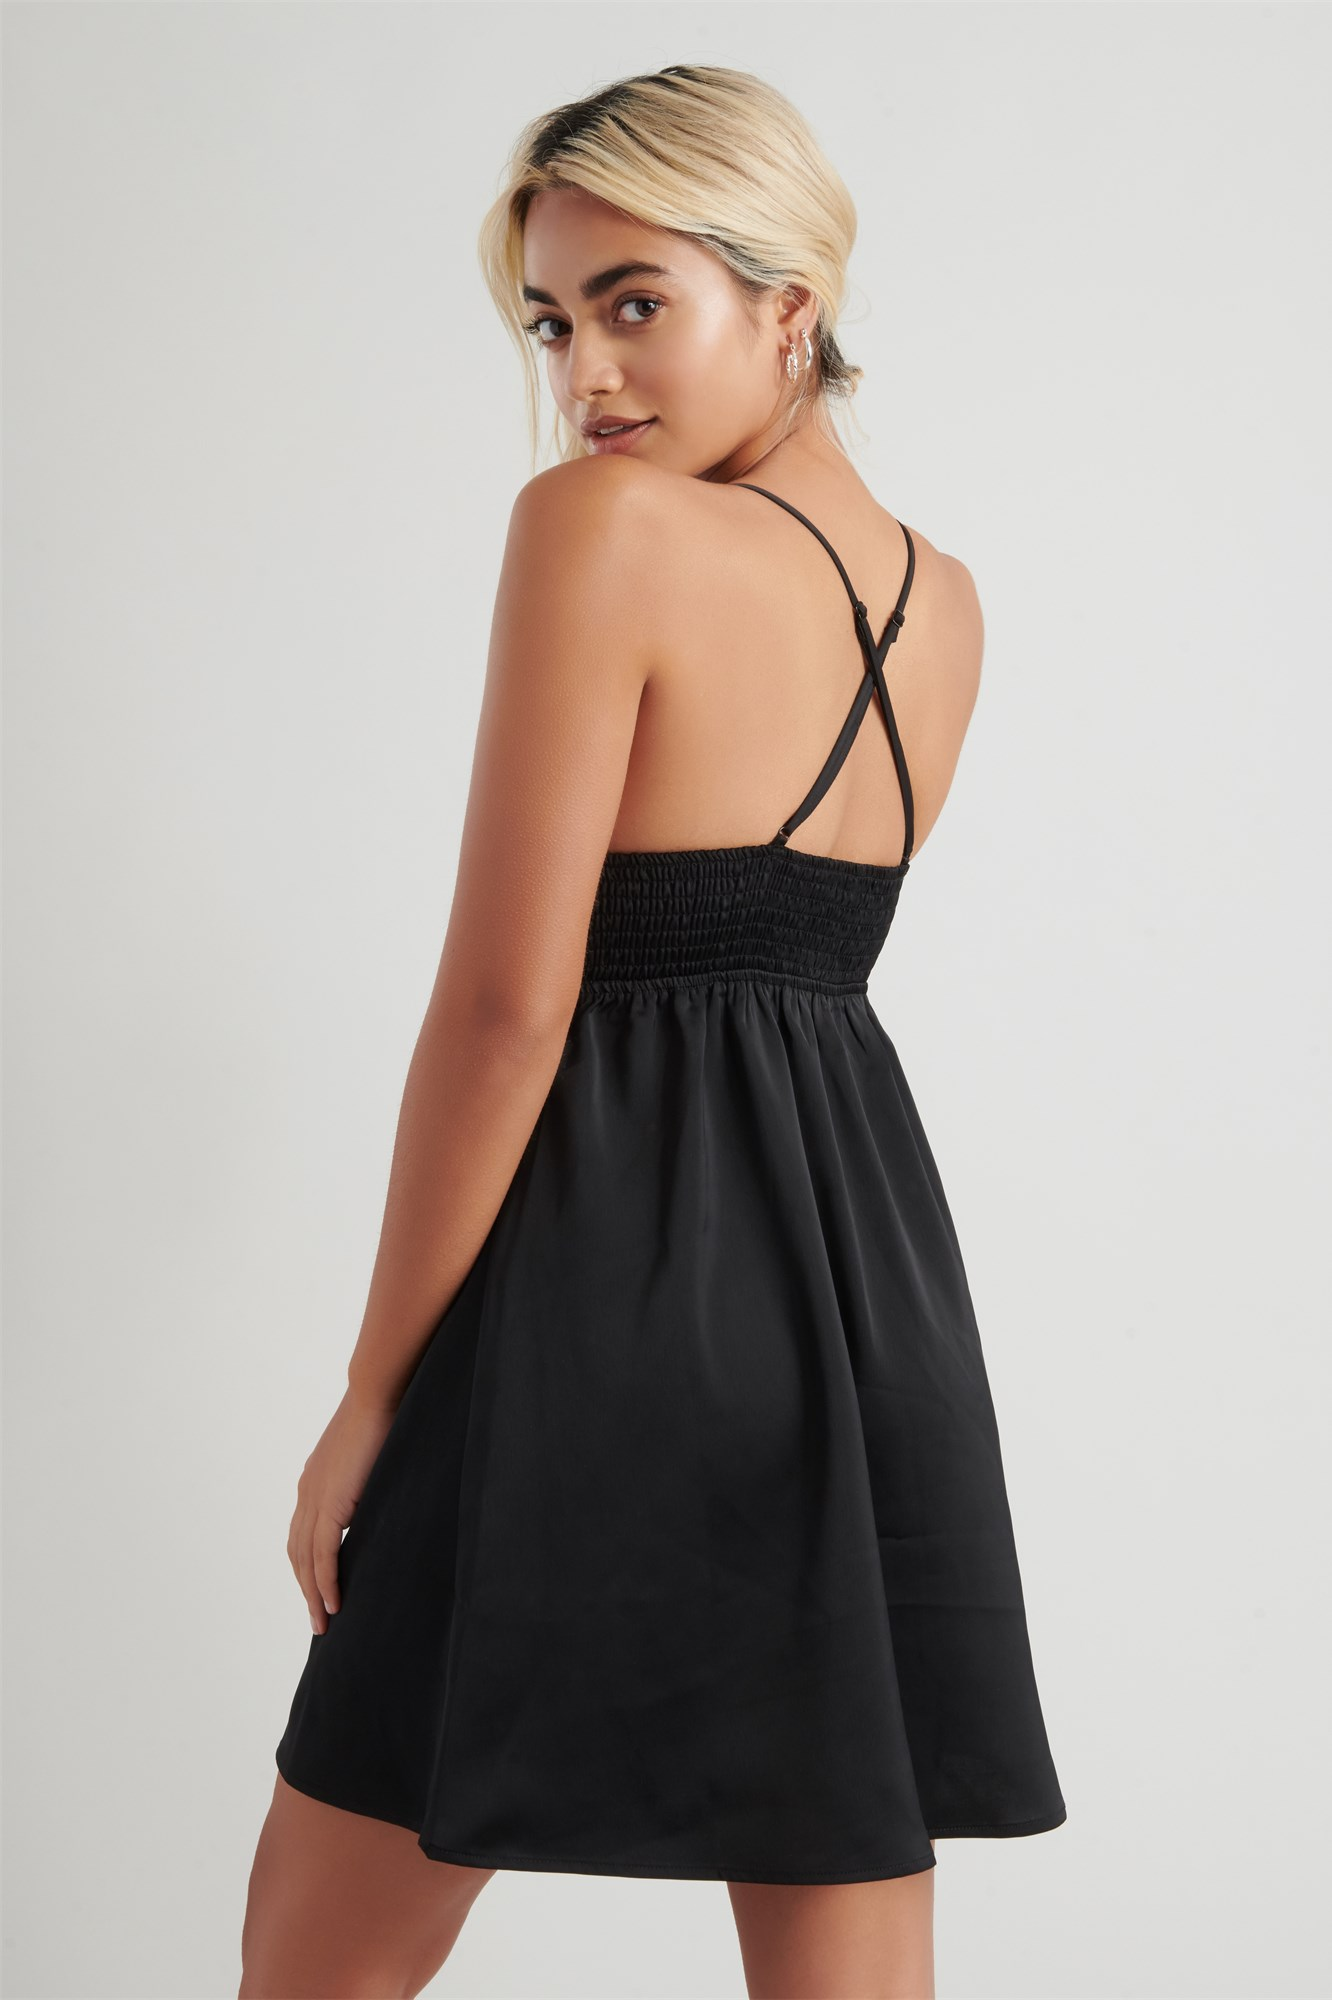 Image 5 of Satin Fit & Flare Dress